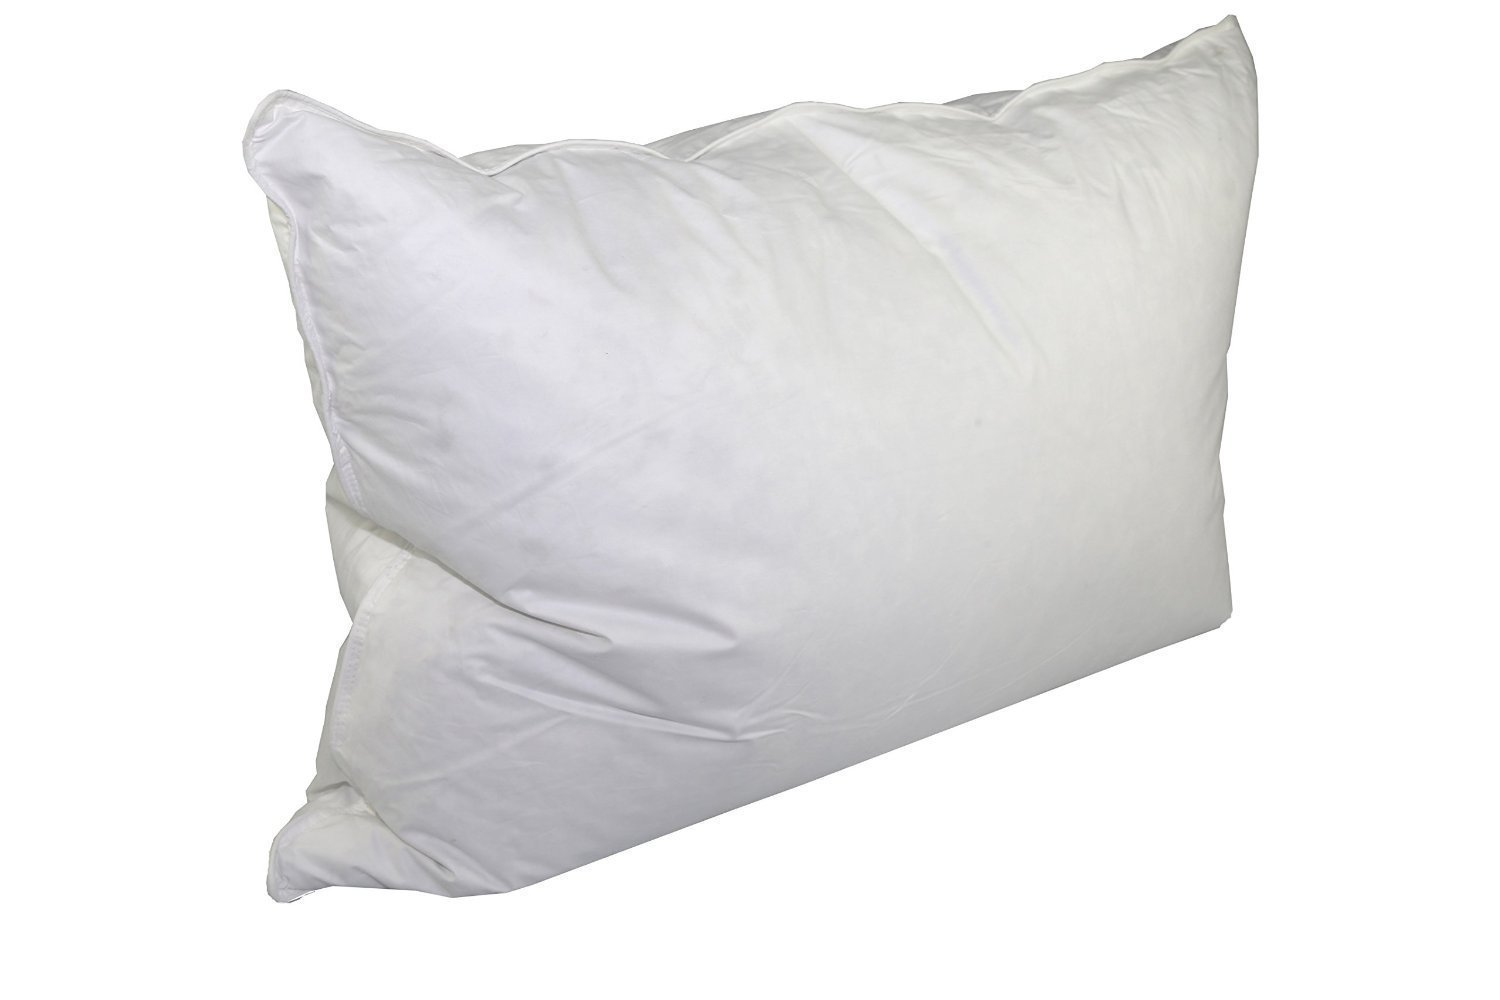 Manchester Mills Down Dreams King Medium Firm Pillow Set - 2 Pillows by Manchester Mills